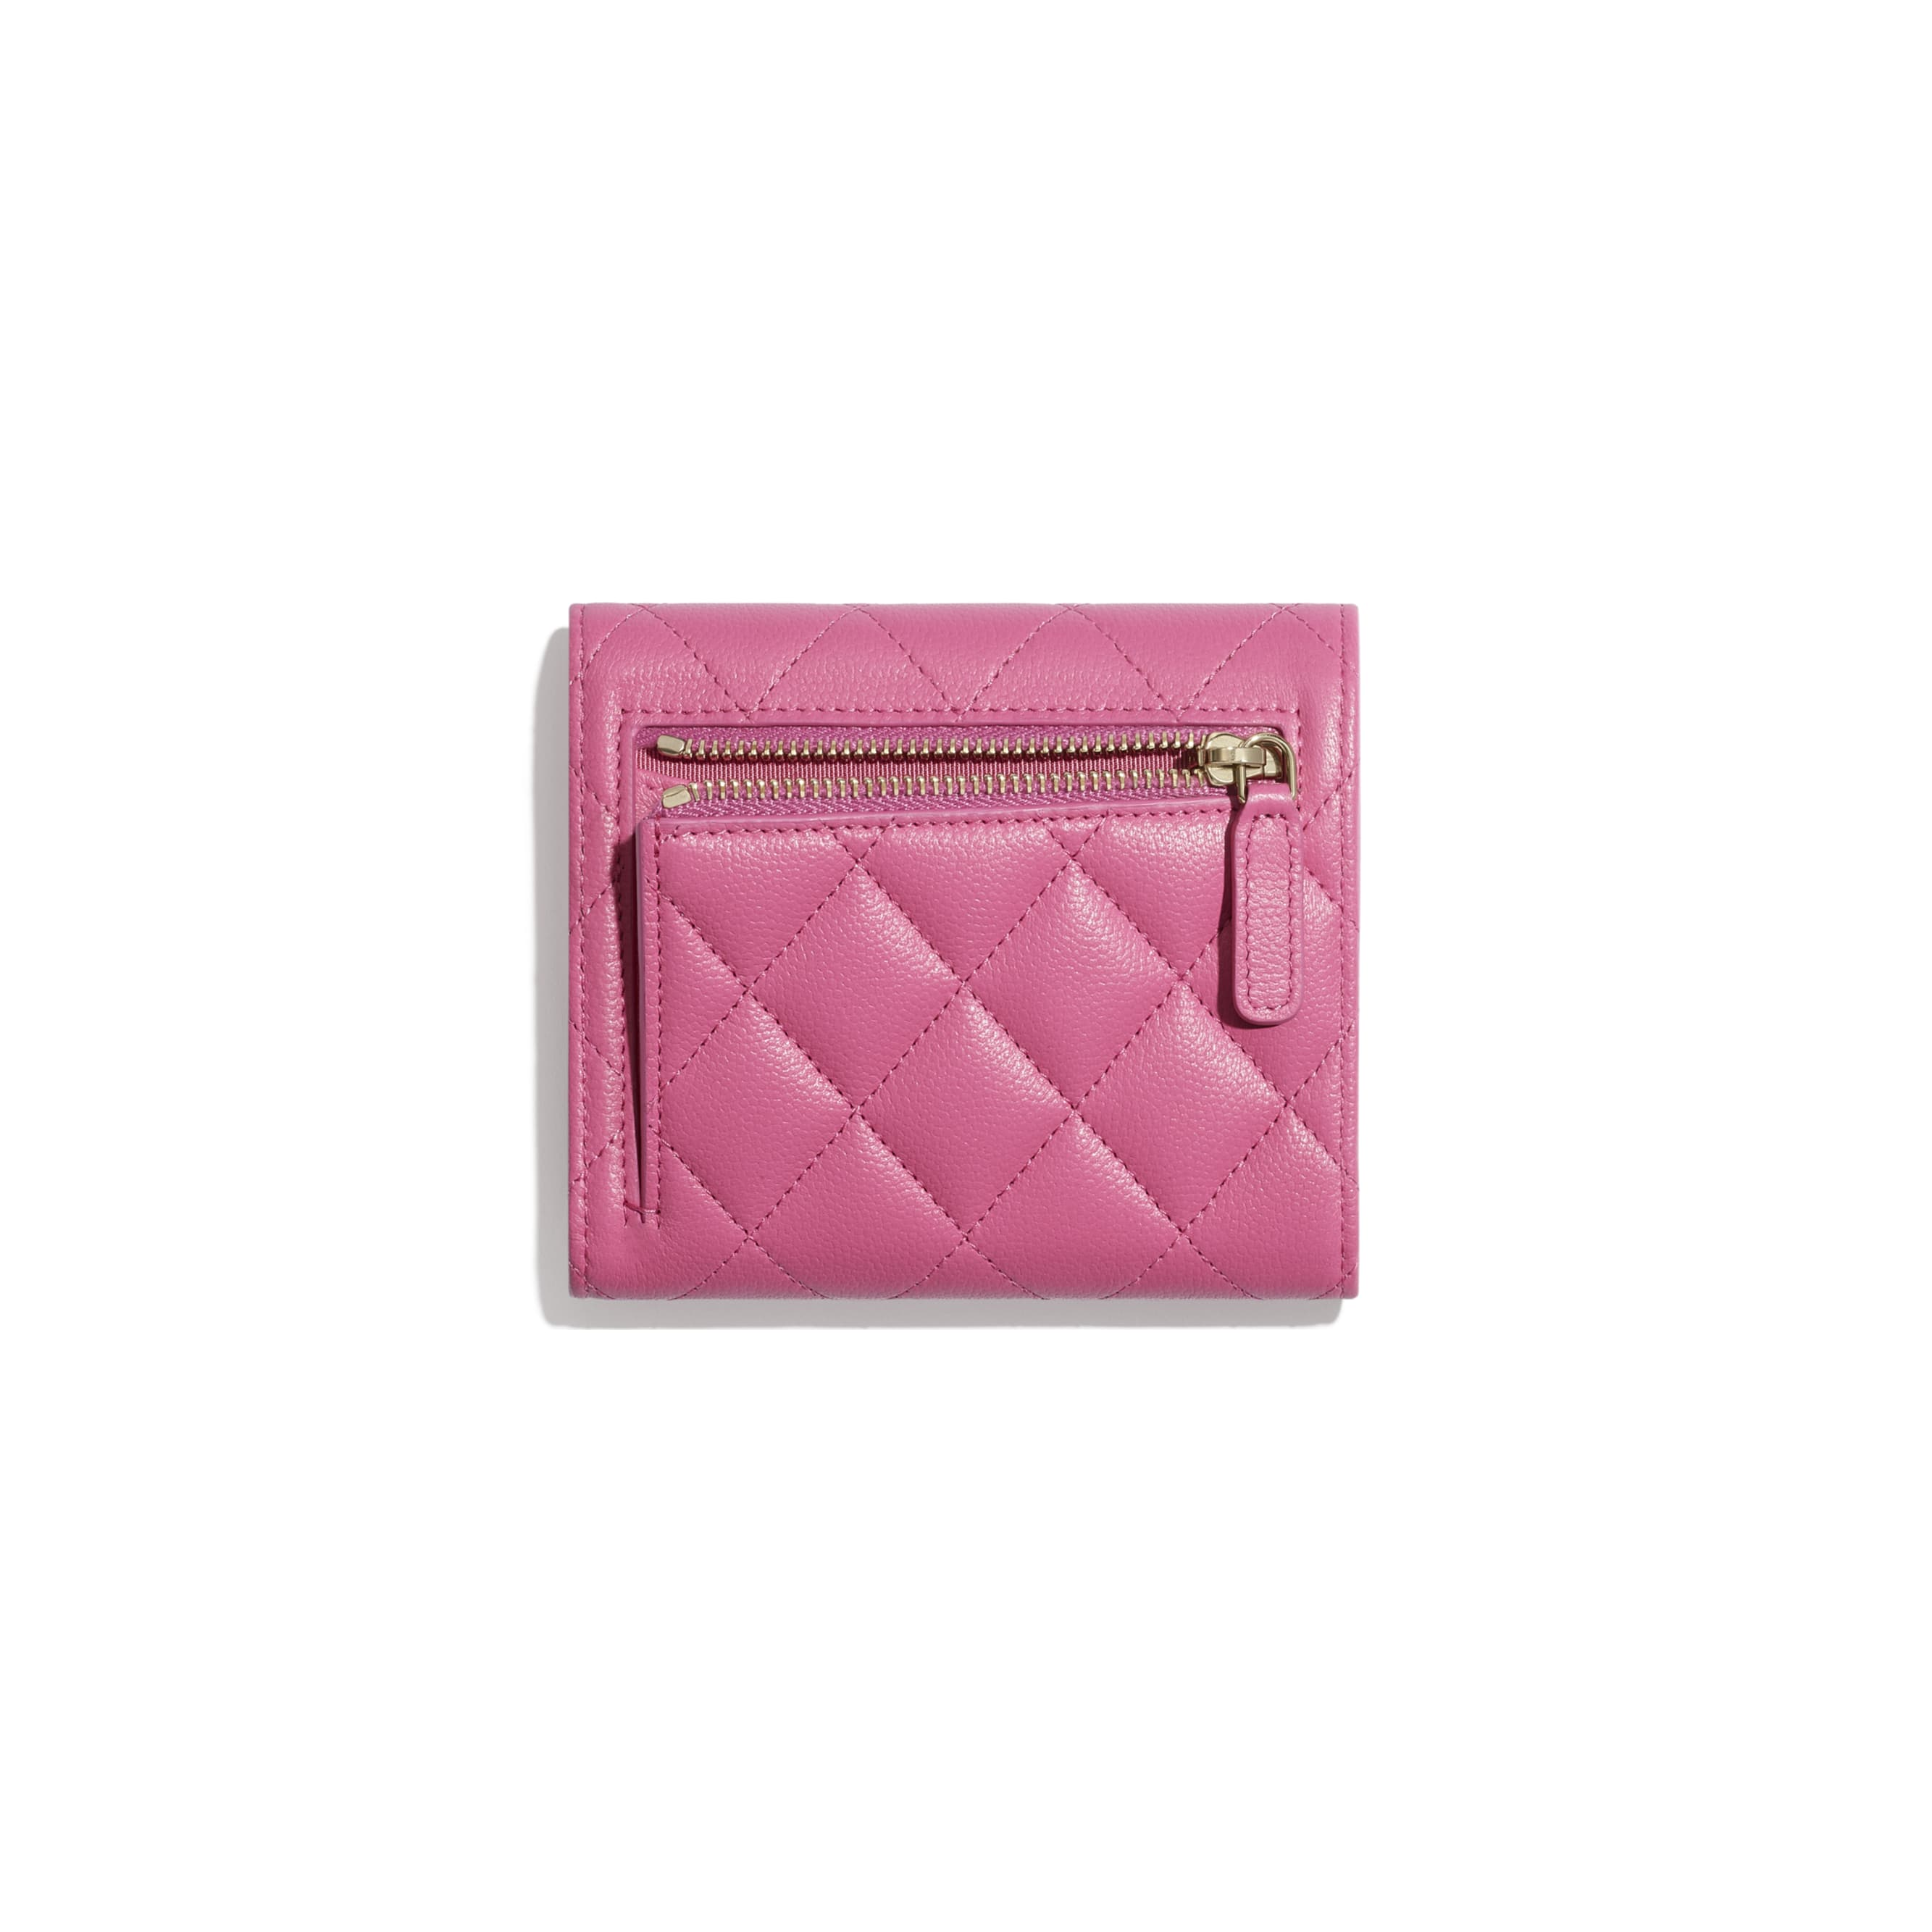 Classic Small Flap Wallet - Pink - Grained Calfskin & Gold-Tone Metal - CHANEL - Alternative view - see standard sized version